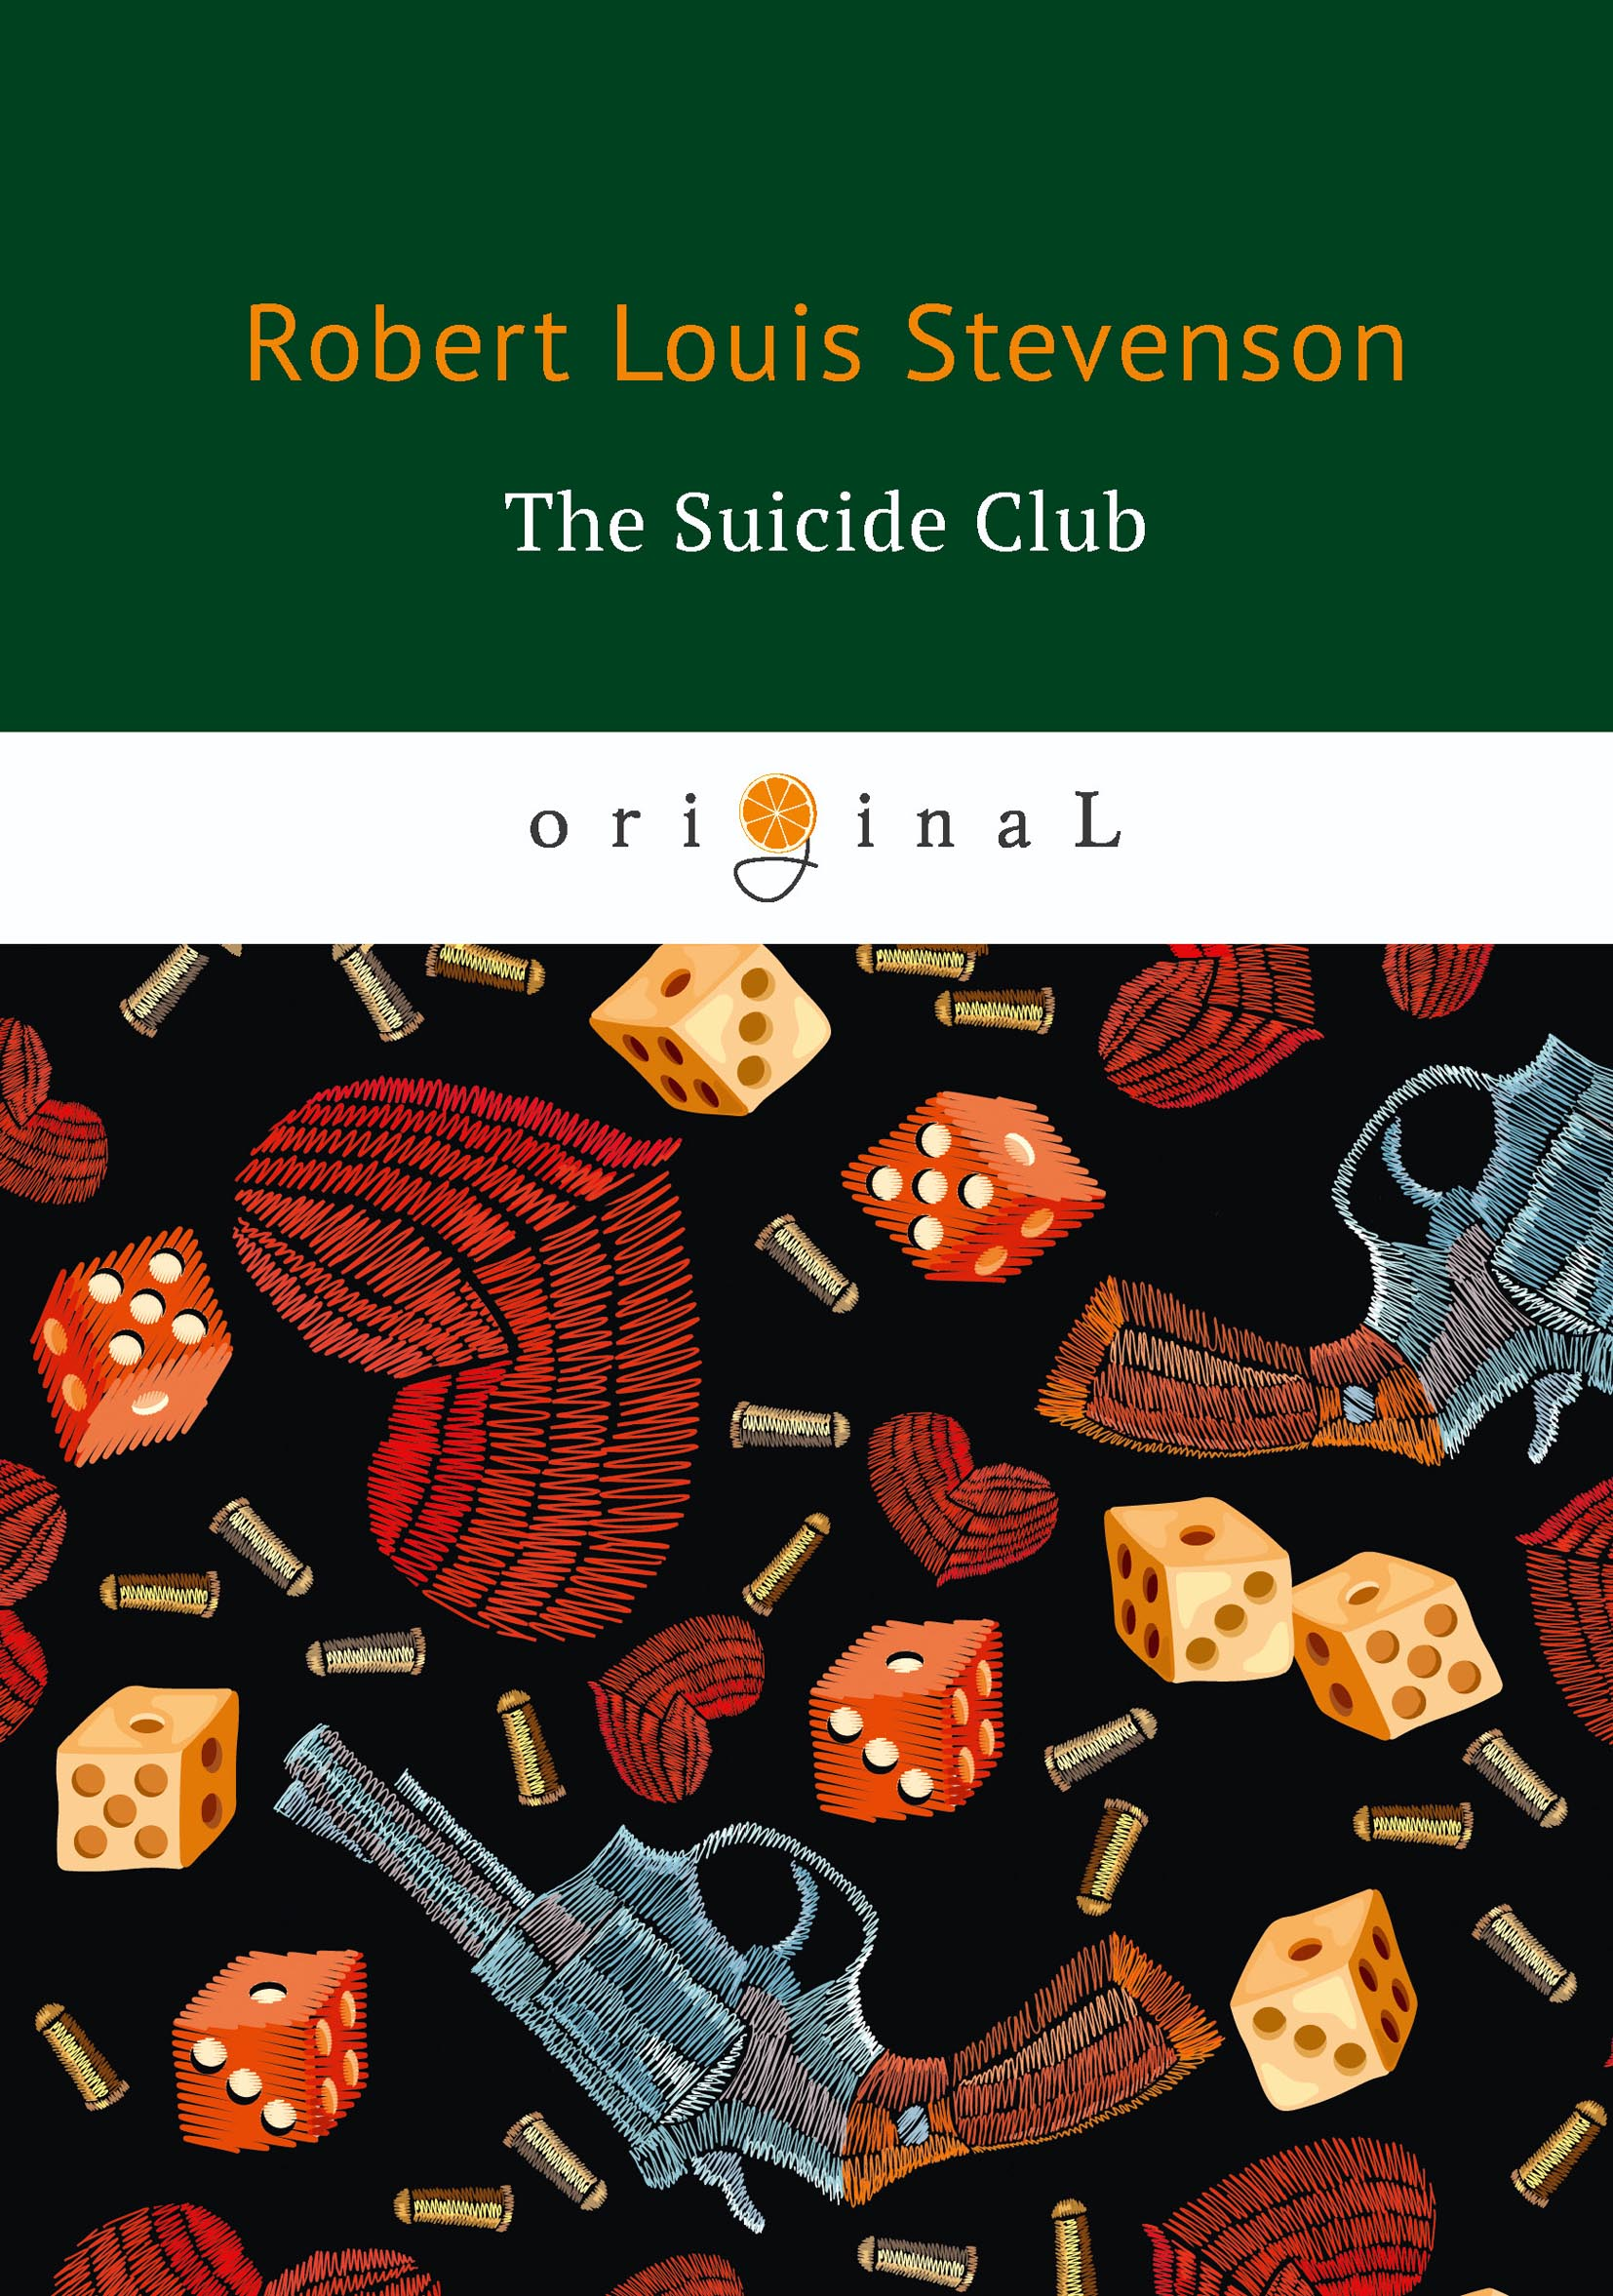 R. L. Stevenson The Suicide Club geikie archibald annals of the royal society club the record of a london dining club in the eighteenth nineteenth centuries